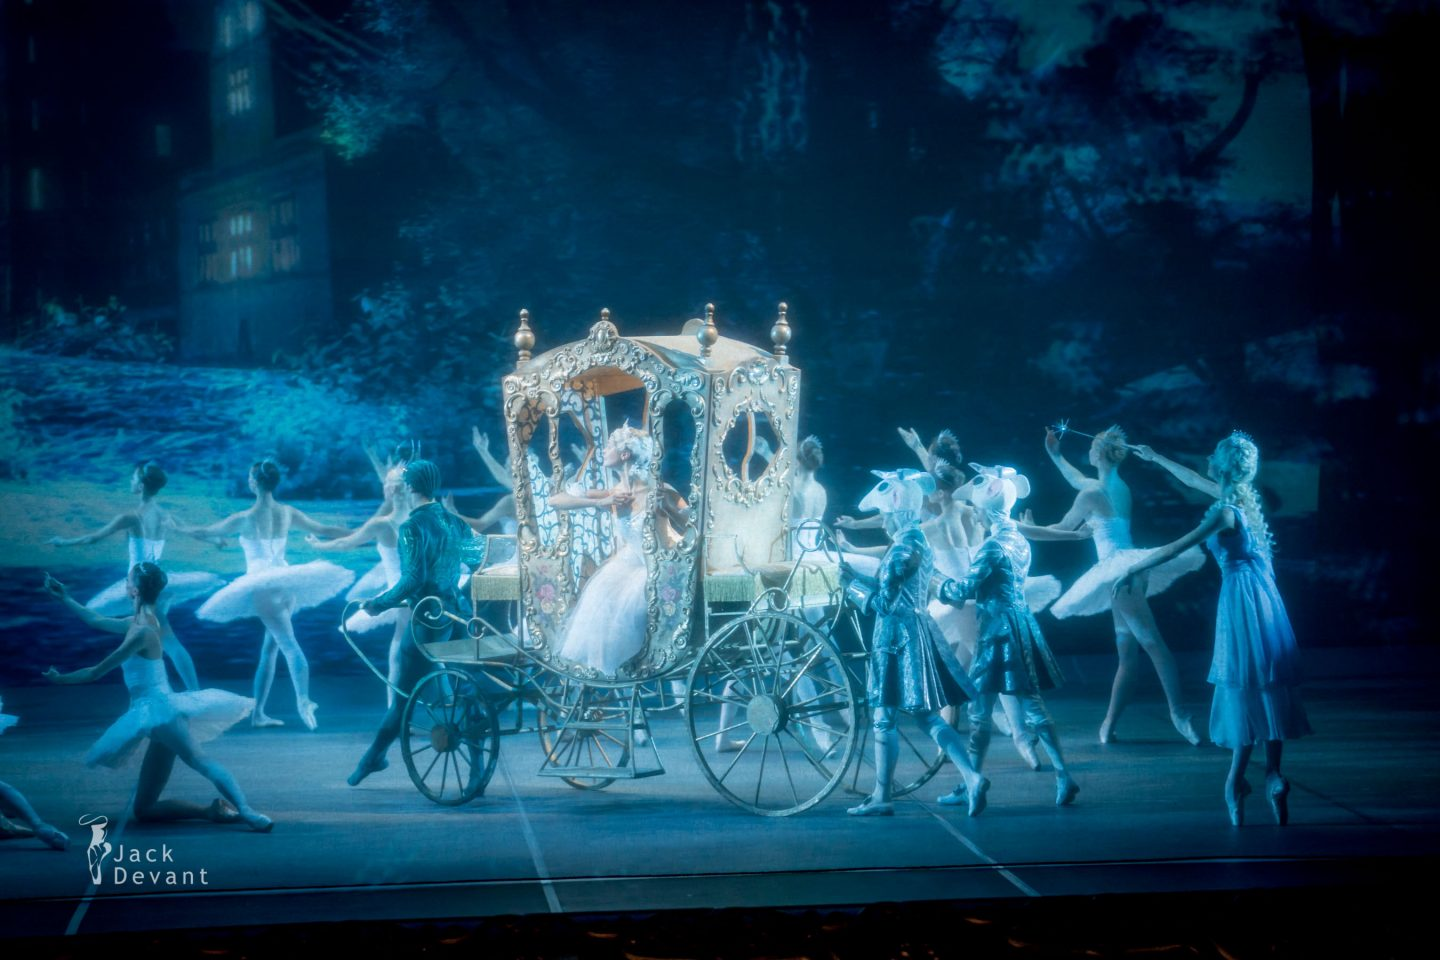 Svetlana Bednenko (Светлана Бедненко) as Fairy Angelina Vorontsova (Анжелина Воронцова) as Cinderella horse carriage